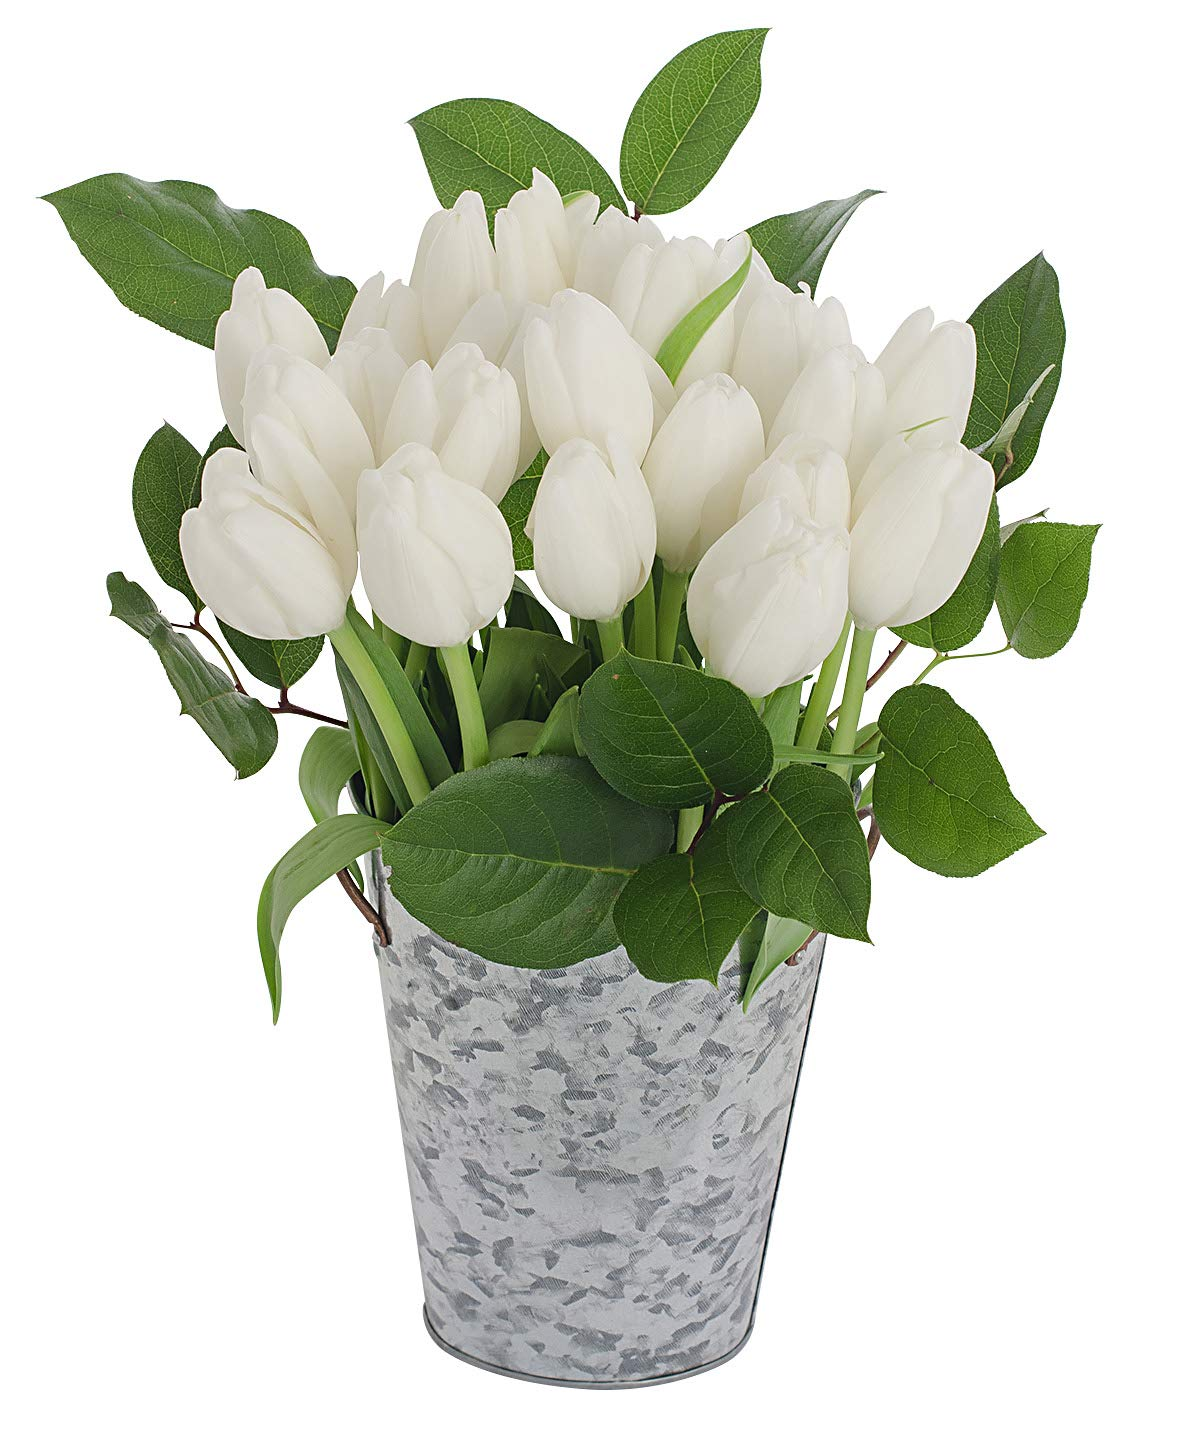 Stargazer Barn Serenity Bouquet 2 Dozen White Tulips with French Bucket Style Vase by Stargazer Barn